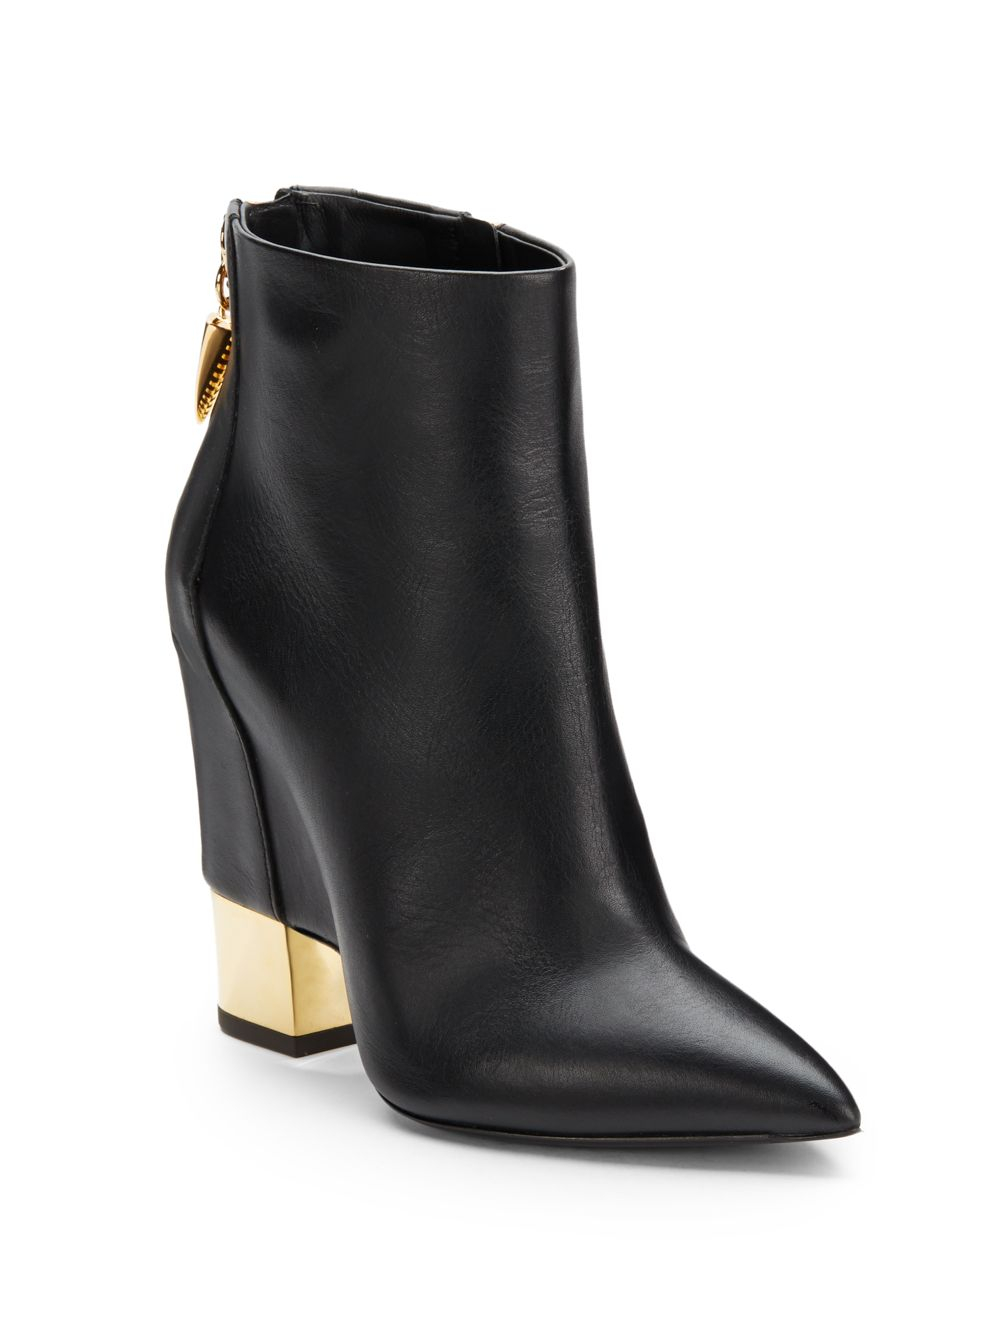 Giuseppe zanotti Leather Wedge-Heel Boots in Black | Lyst